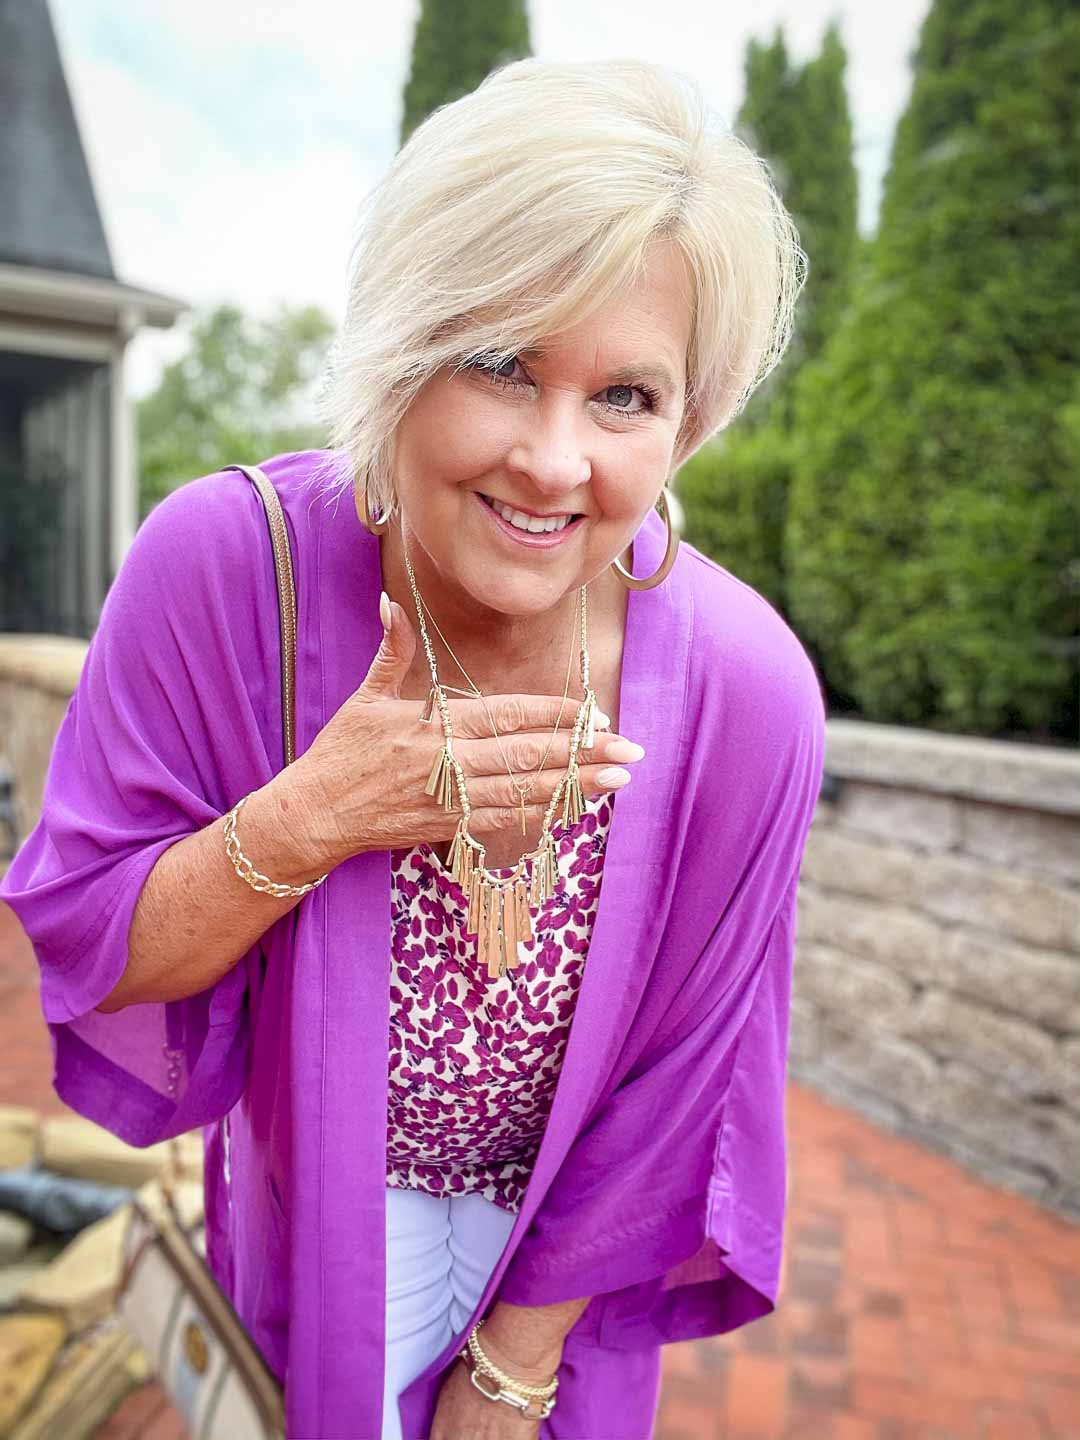 Over 40 fashion blogger, Tania Stephens is wearing a purple cardigan with gold jewelry